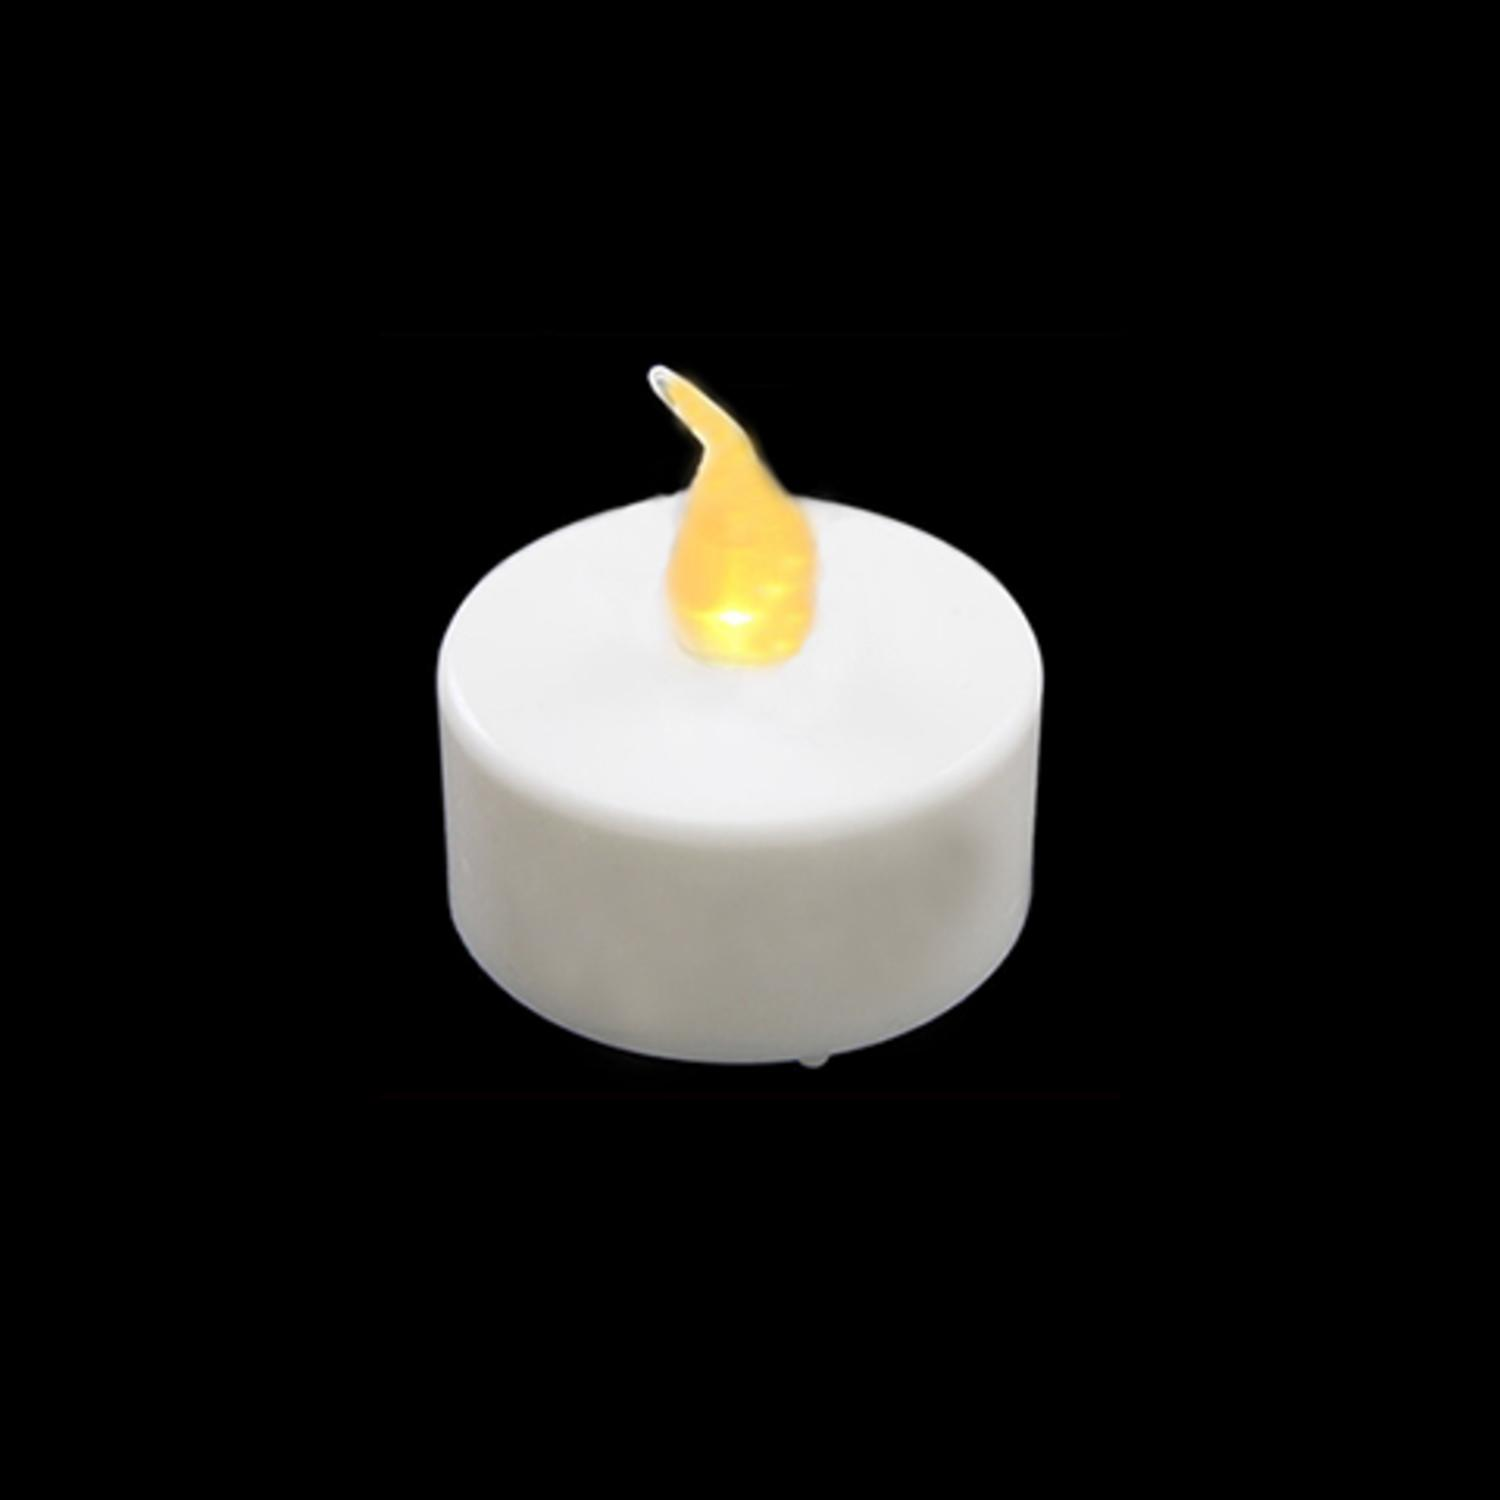 Pack of 4 LED Lighted Battery Operated Flicker Flame White Christmas Tea Light Candles